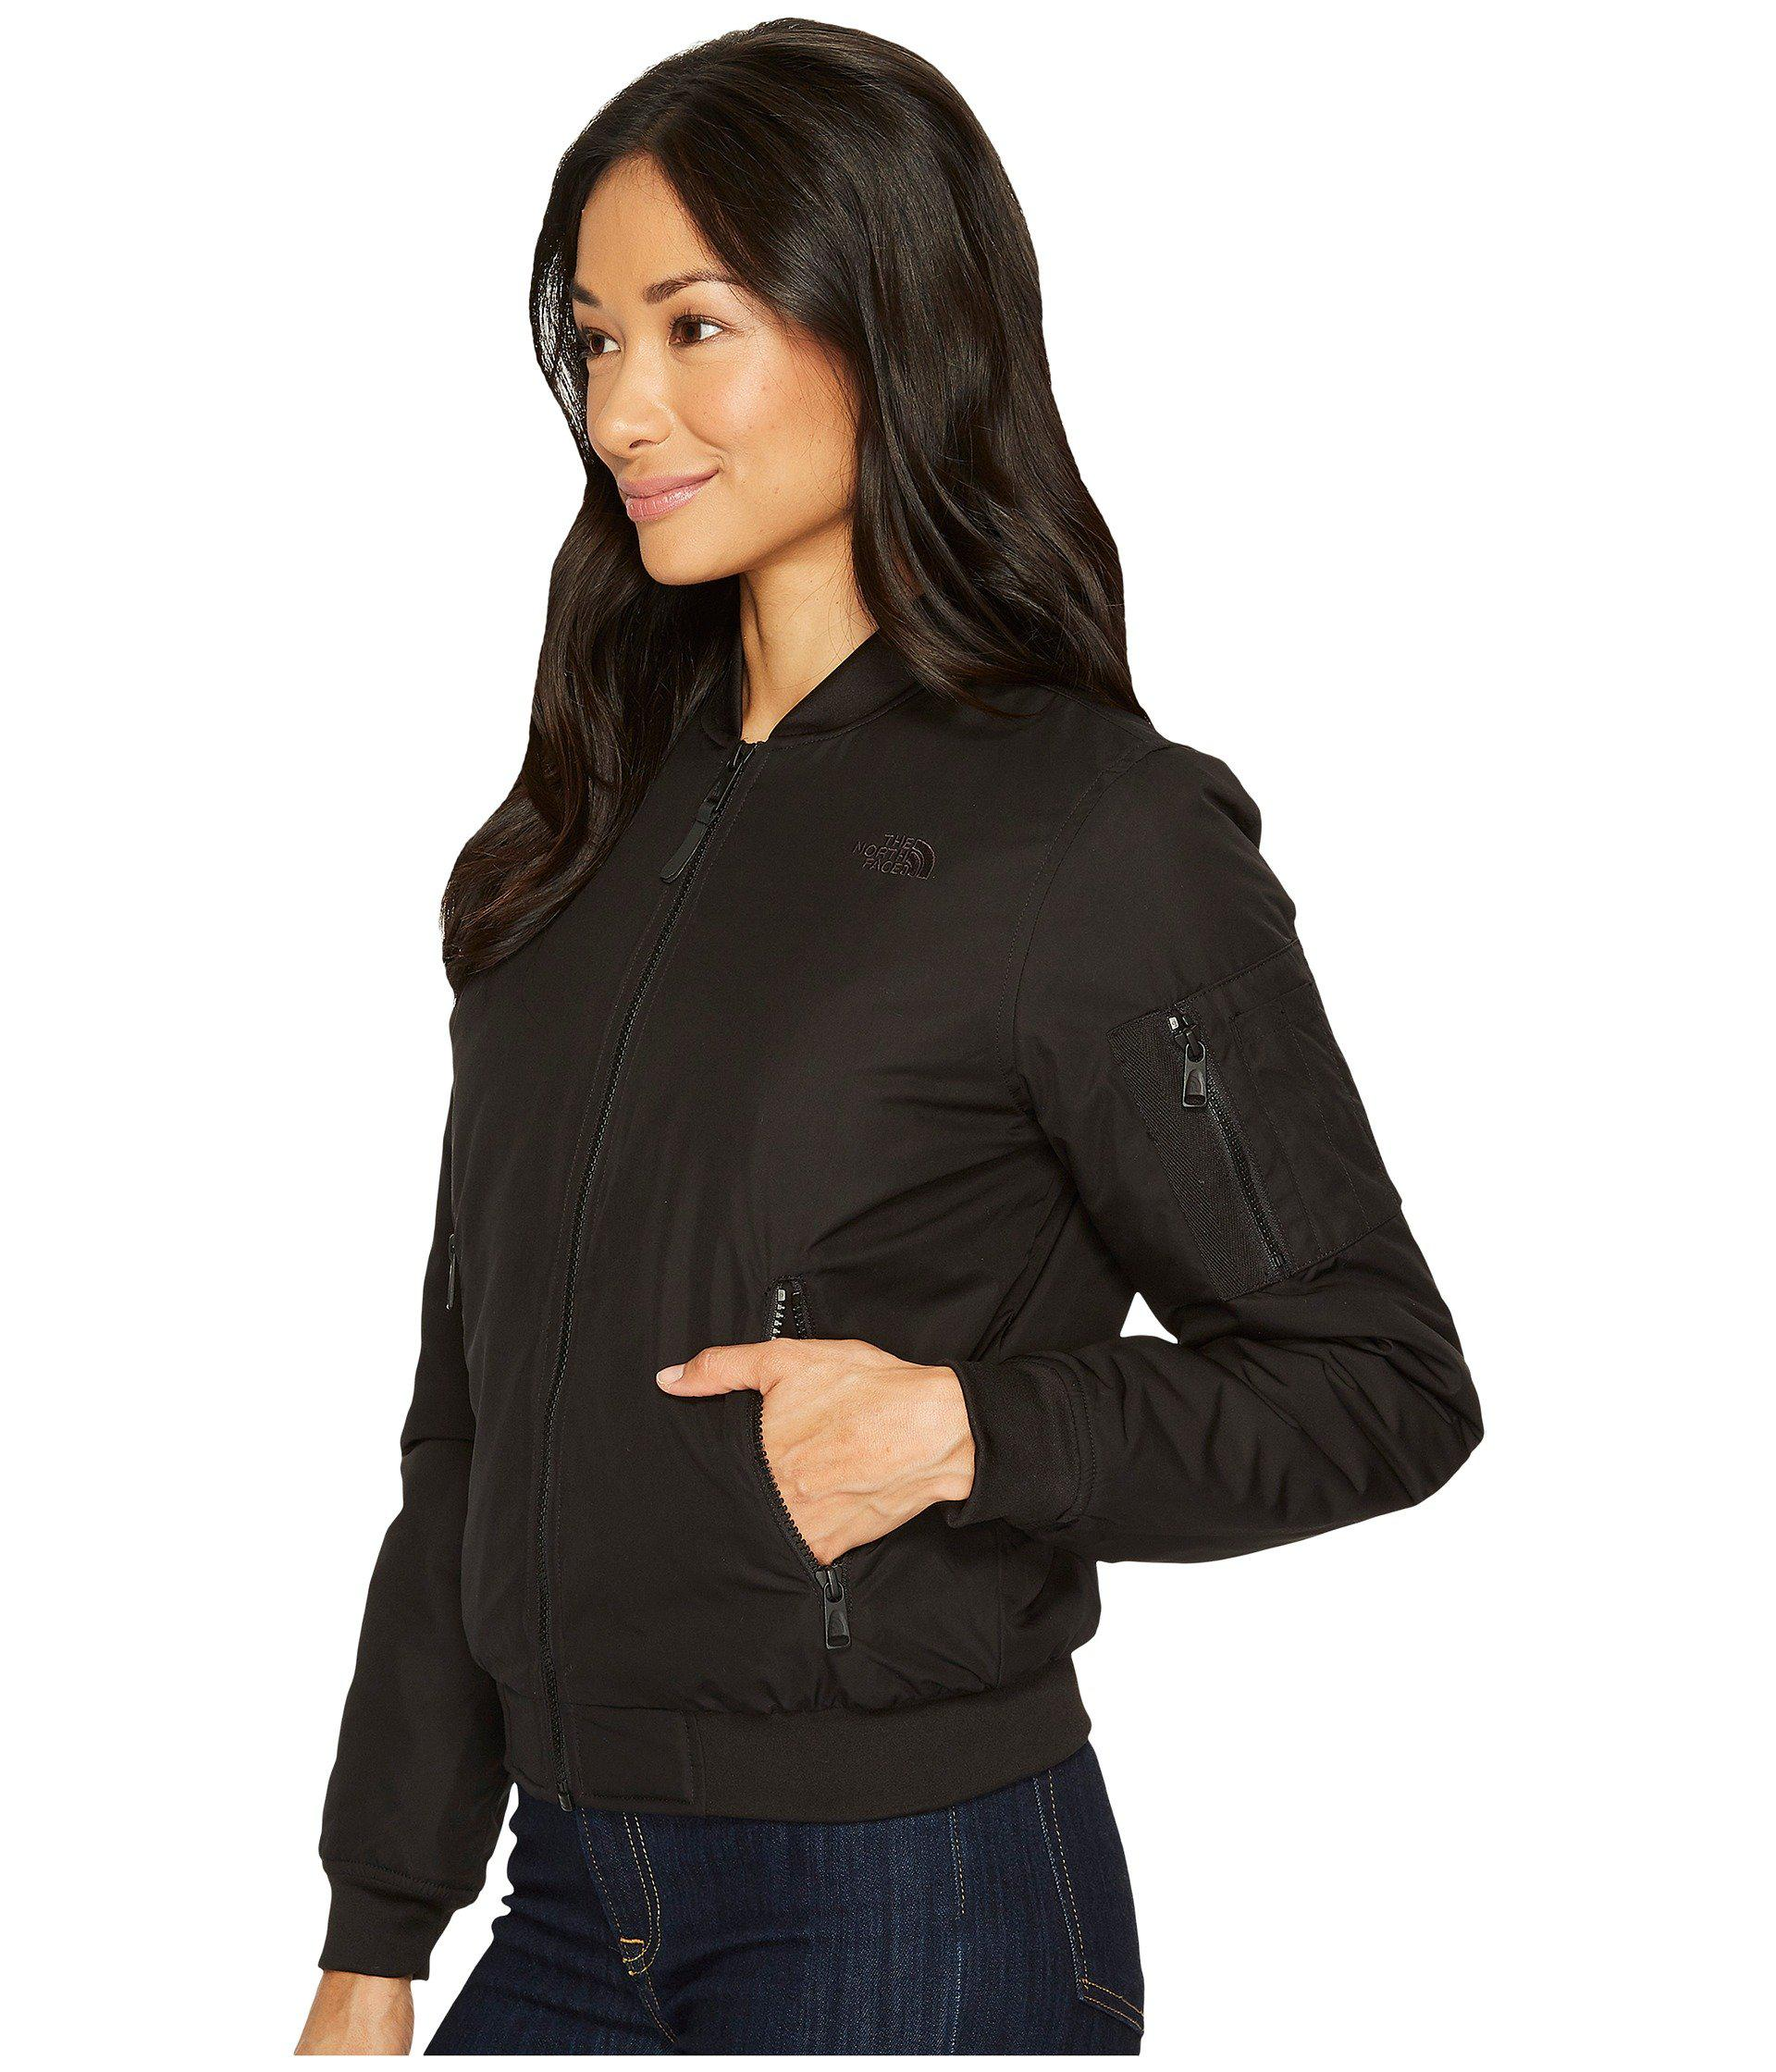 d327aa43d The North Face Black Barstol Bomber